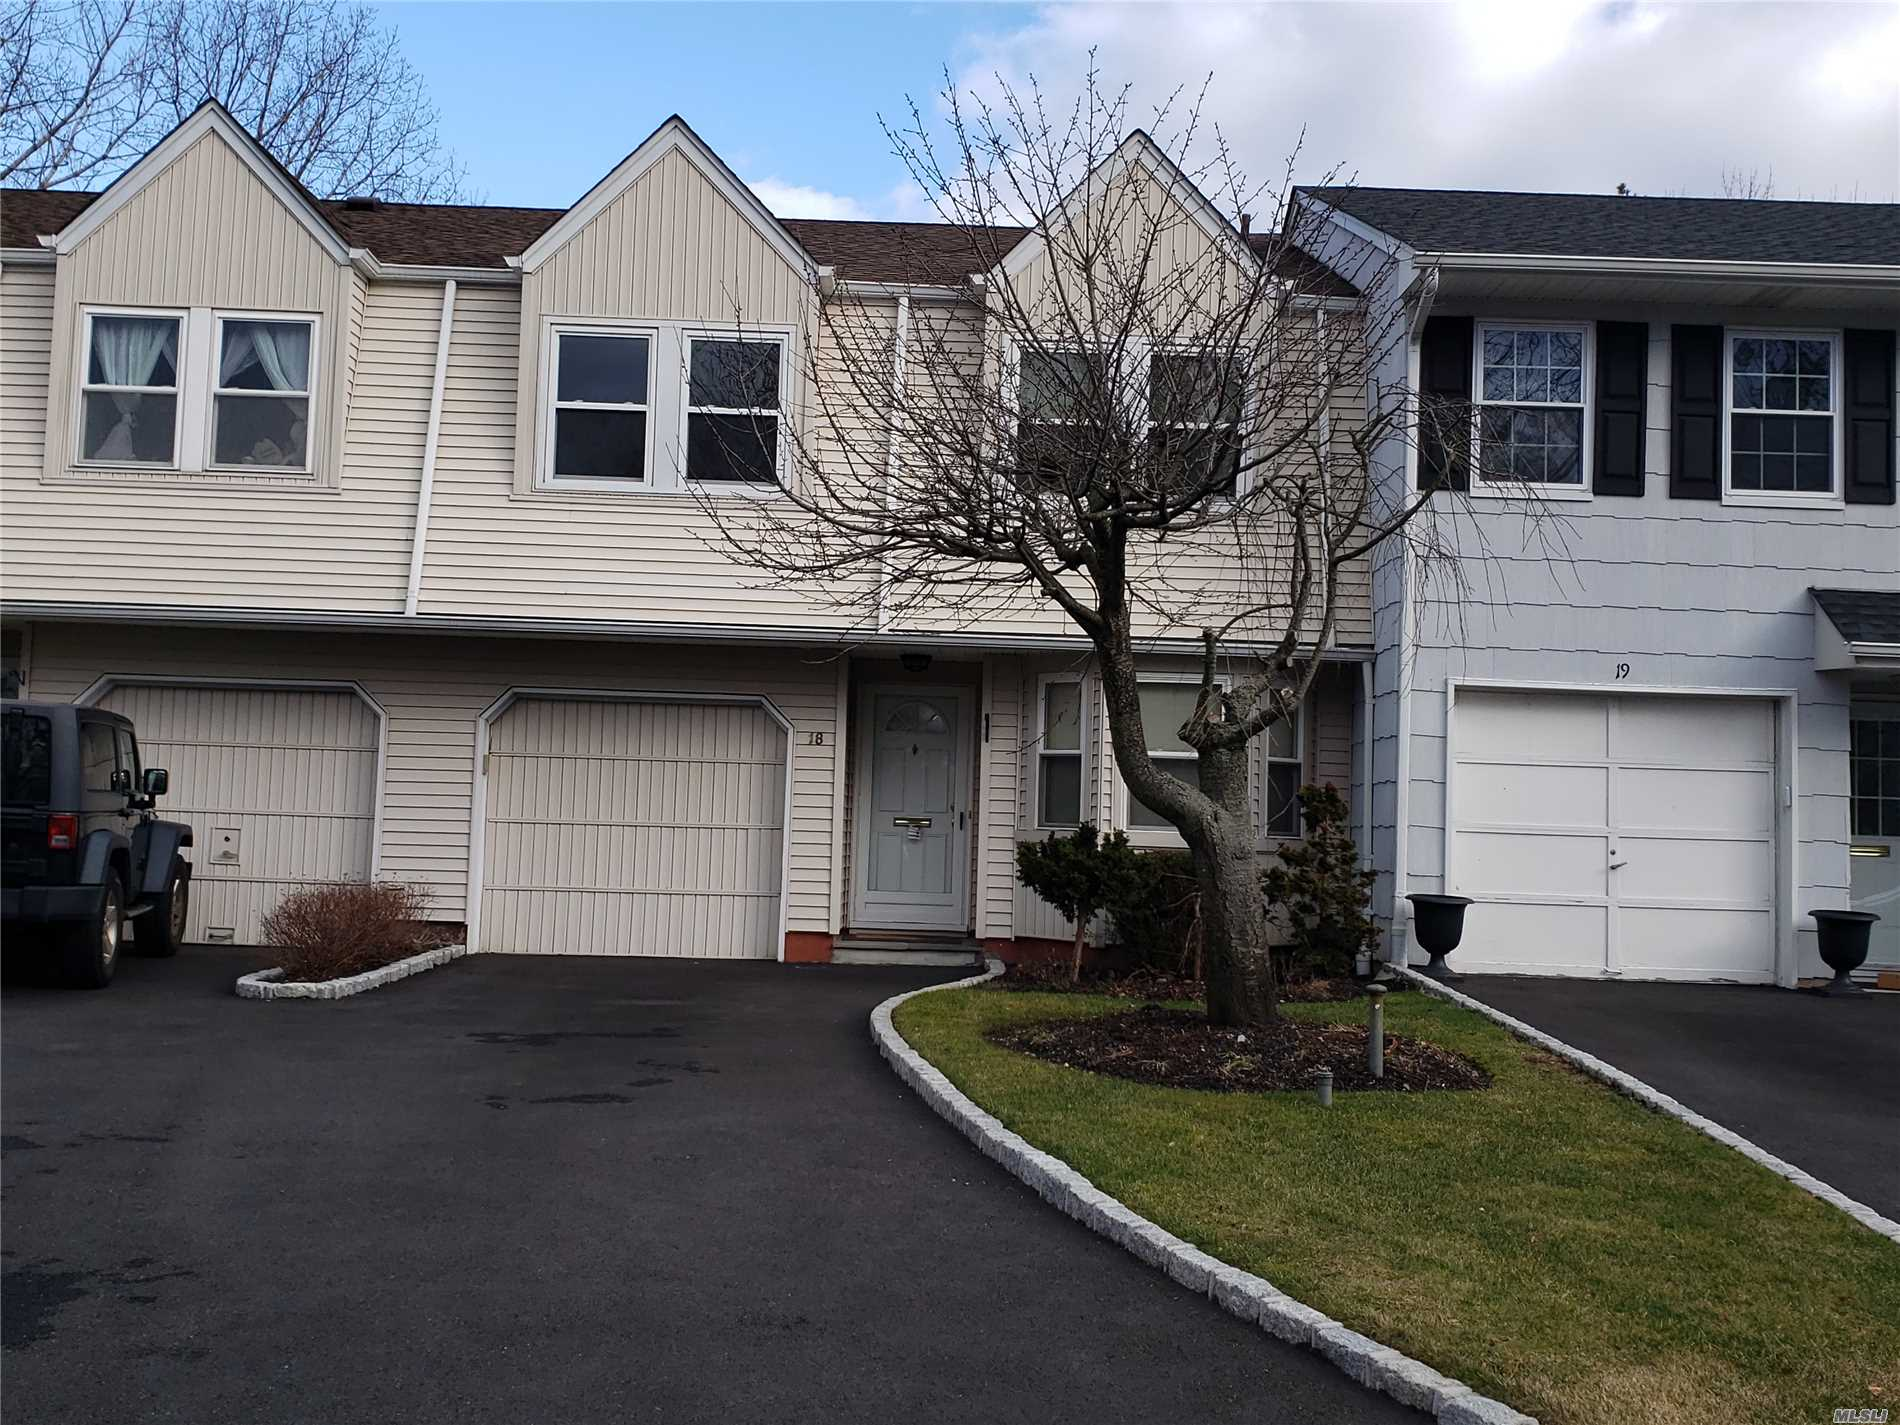 Beautiful townhouse locate in Jericho very spacious for a family to enjoy excellent school district.